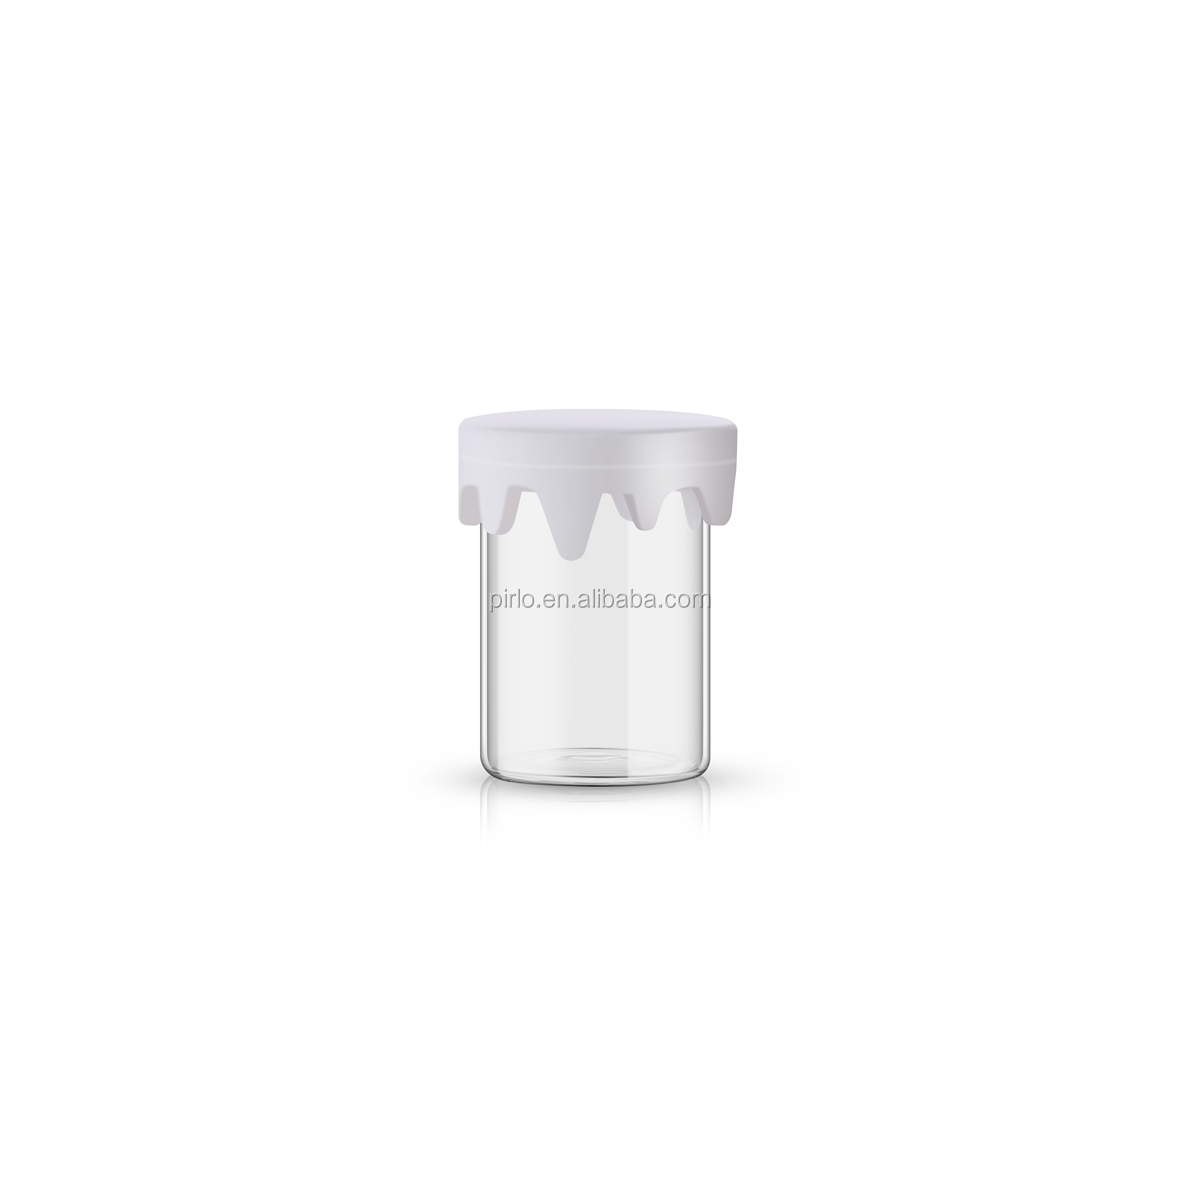 2ml 3ml 4ml 6ml 8ml 10ml concentrate container hem packaging concentrate glass jar with silicon drippy lid